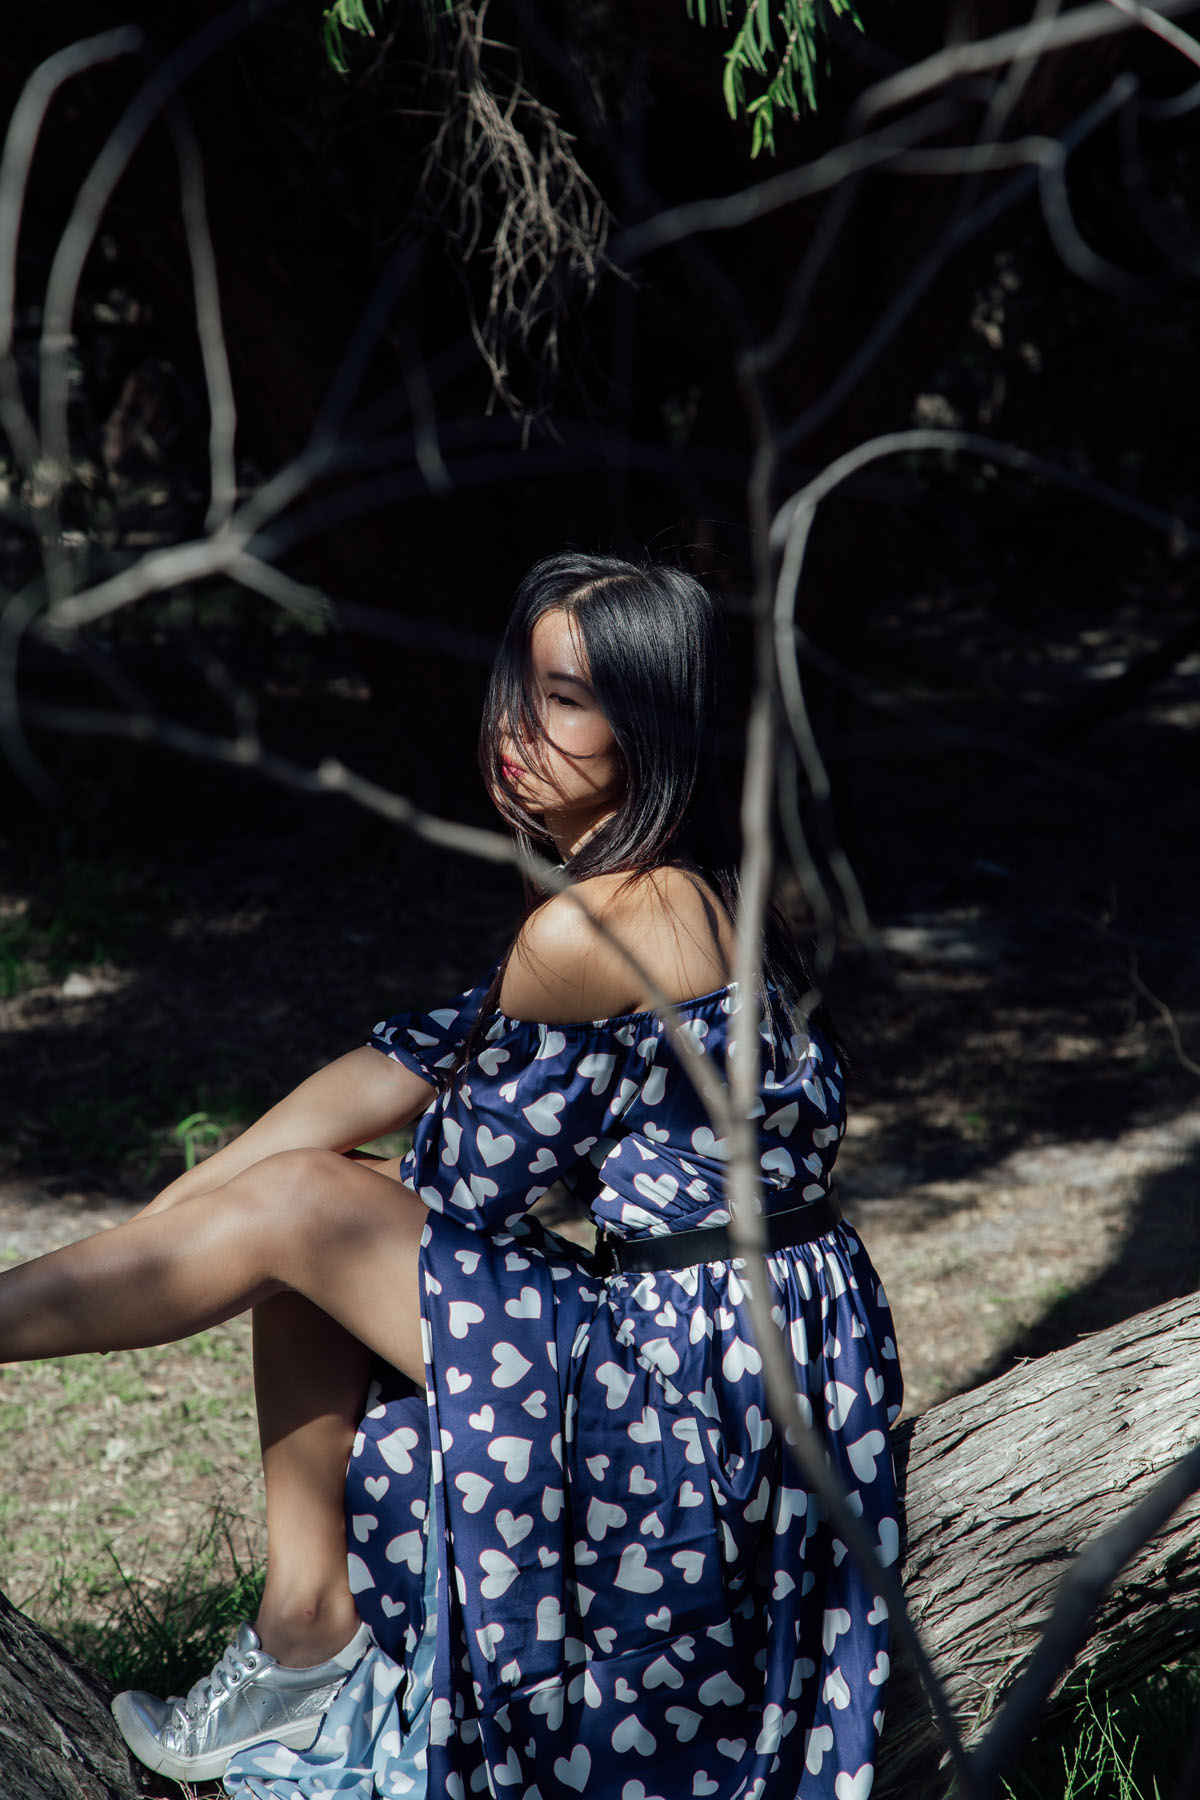 Off Shoulder Maxi Dress Editorial - Ezzentricblog.com